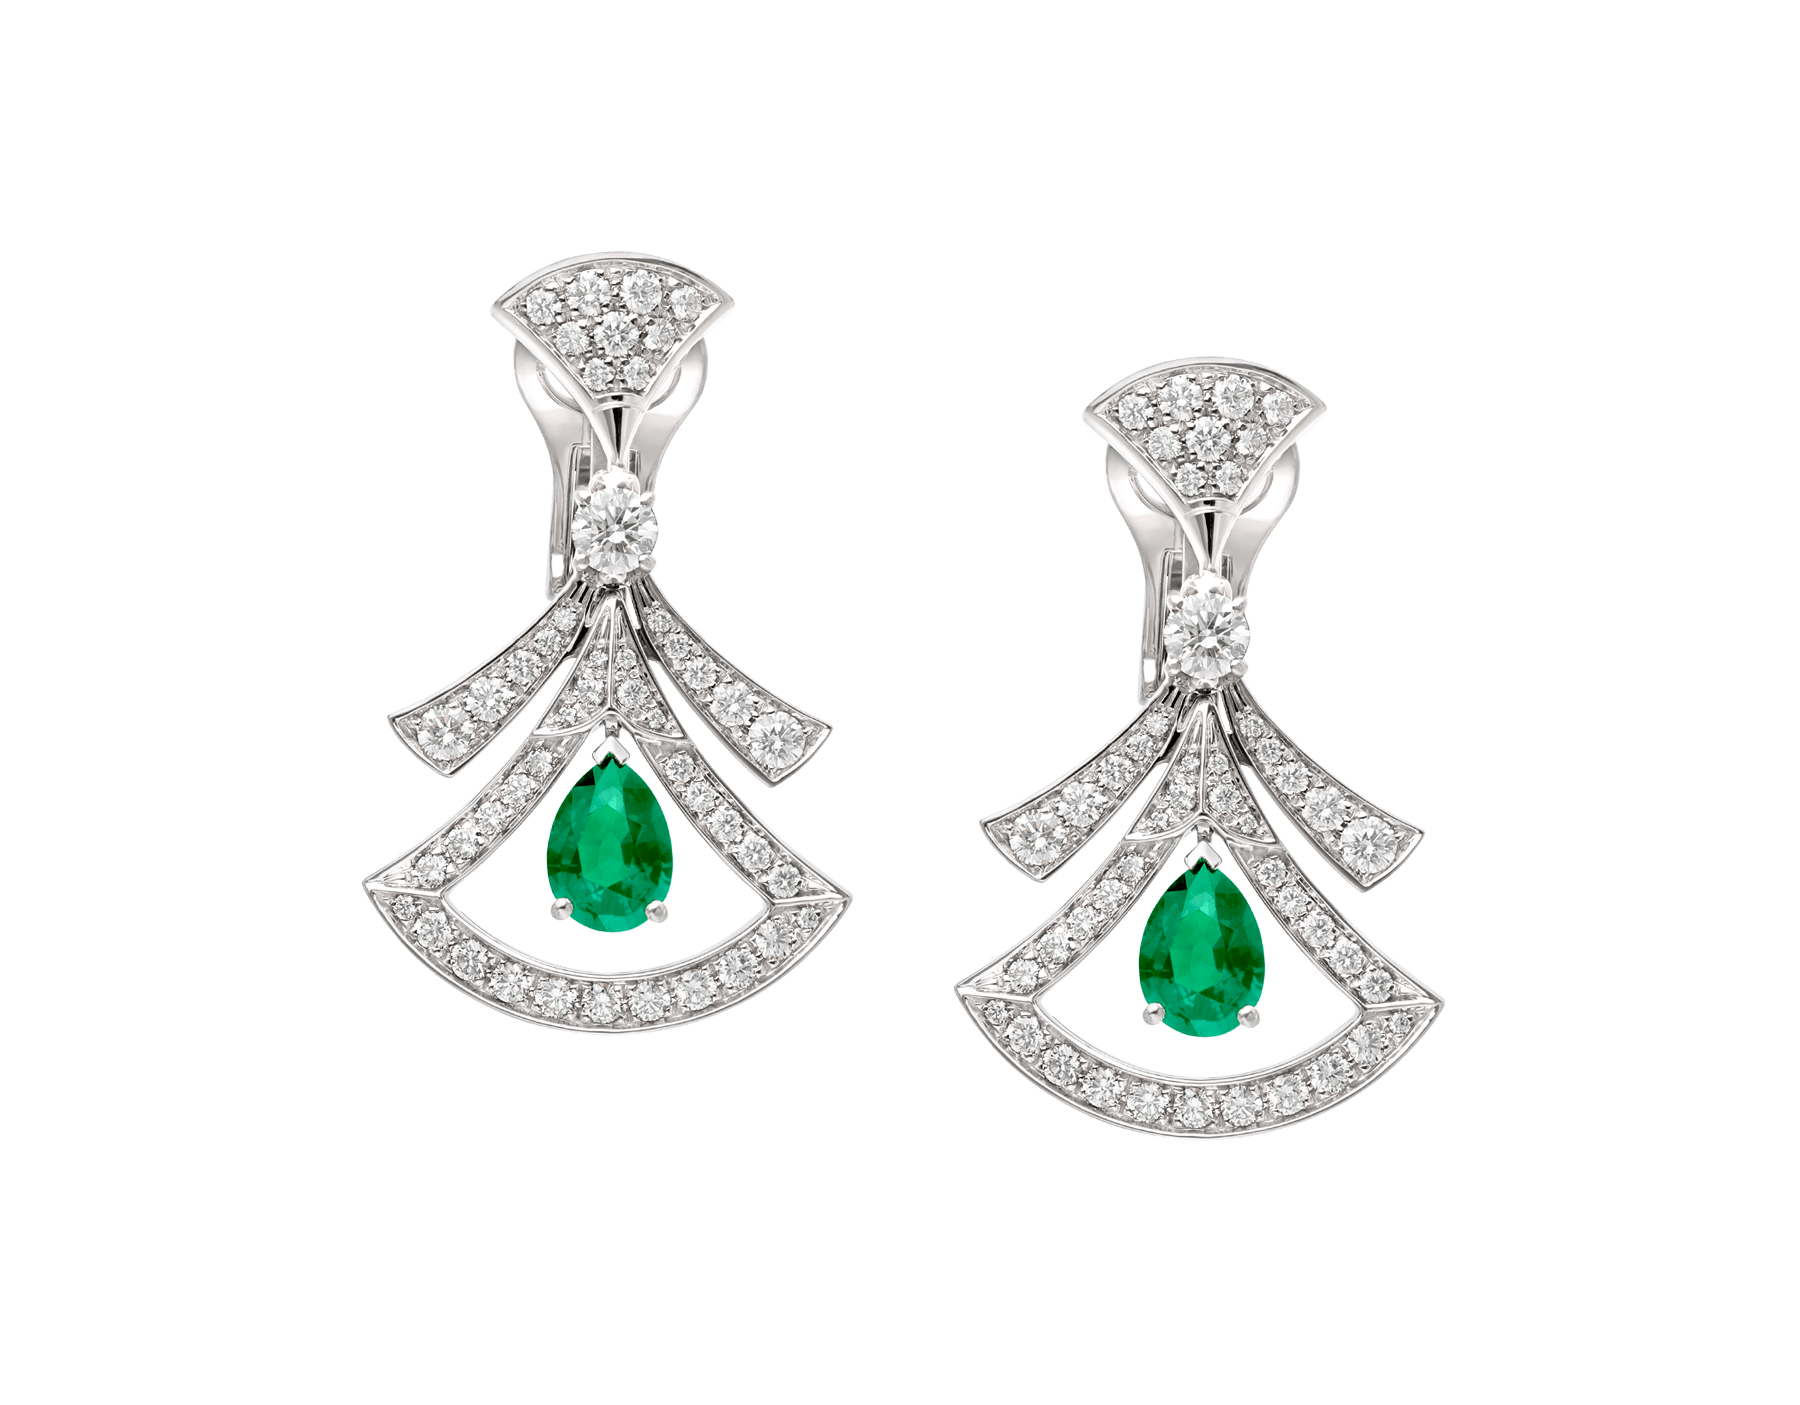 DIVAS' DREAM 18 kt white gold openwork earring set with pear-shaped emeralds, round brilliant-cut and pavé diamonds. 356956 image 1